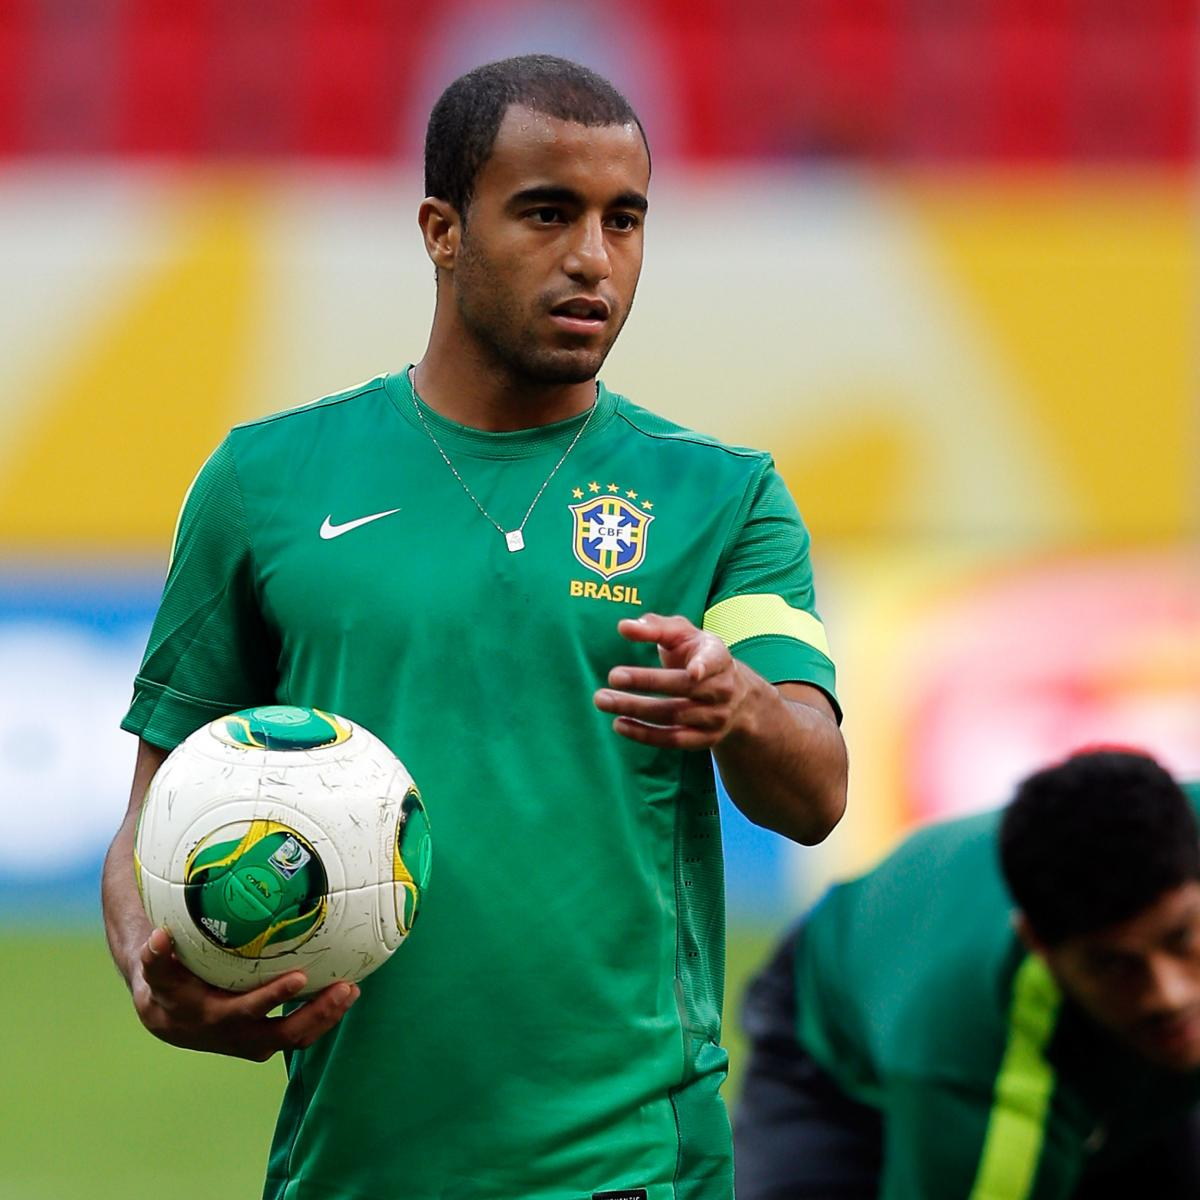 Lucas Moura Neymar: Confederations Cup 2013: Should Lucas Moura Replace Hulk